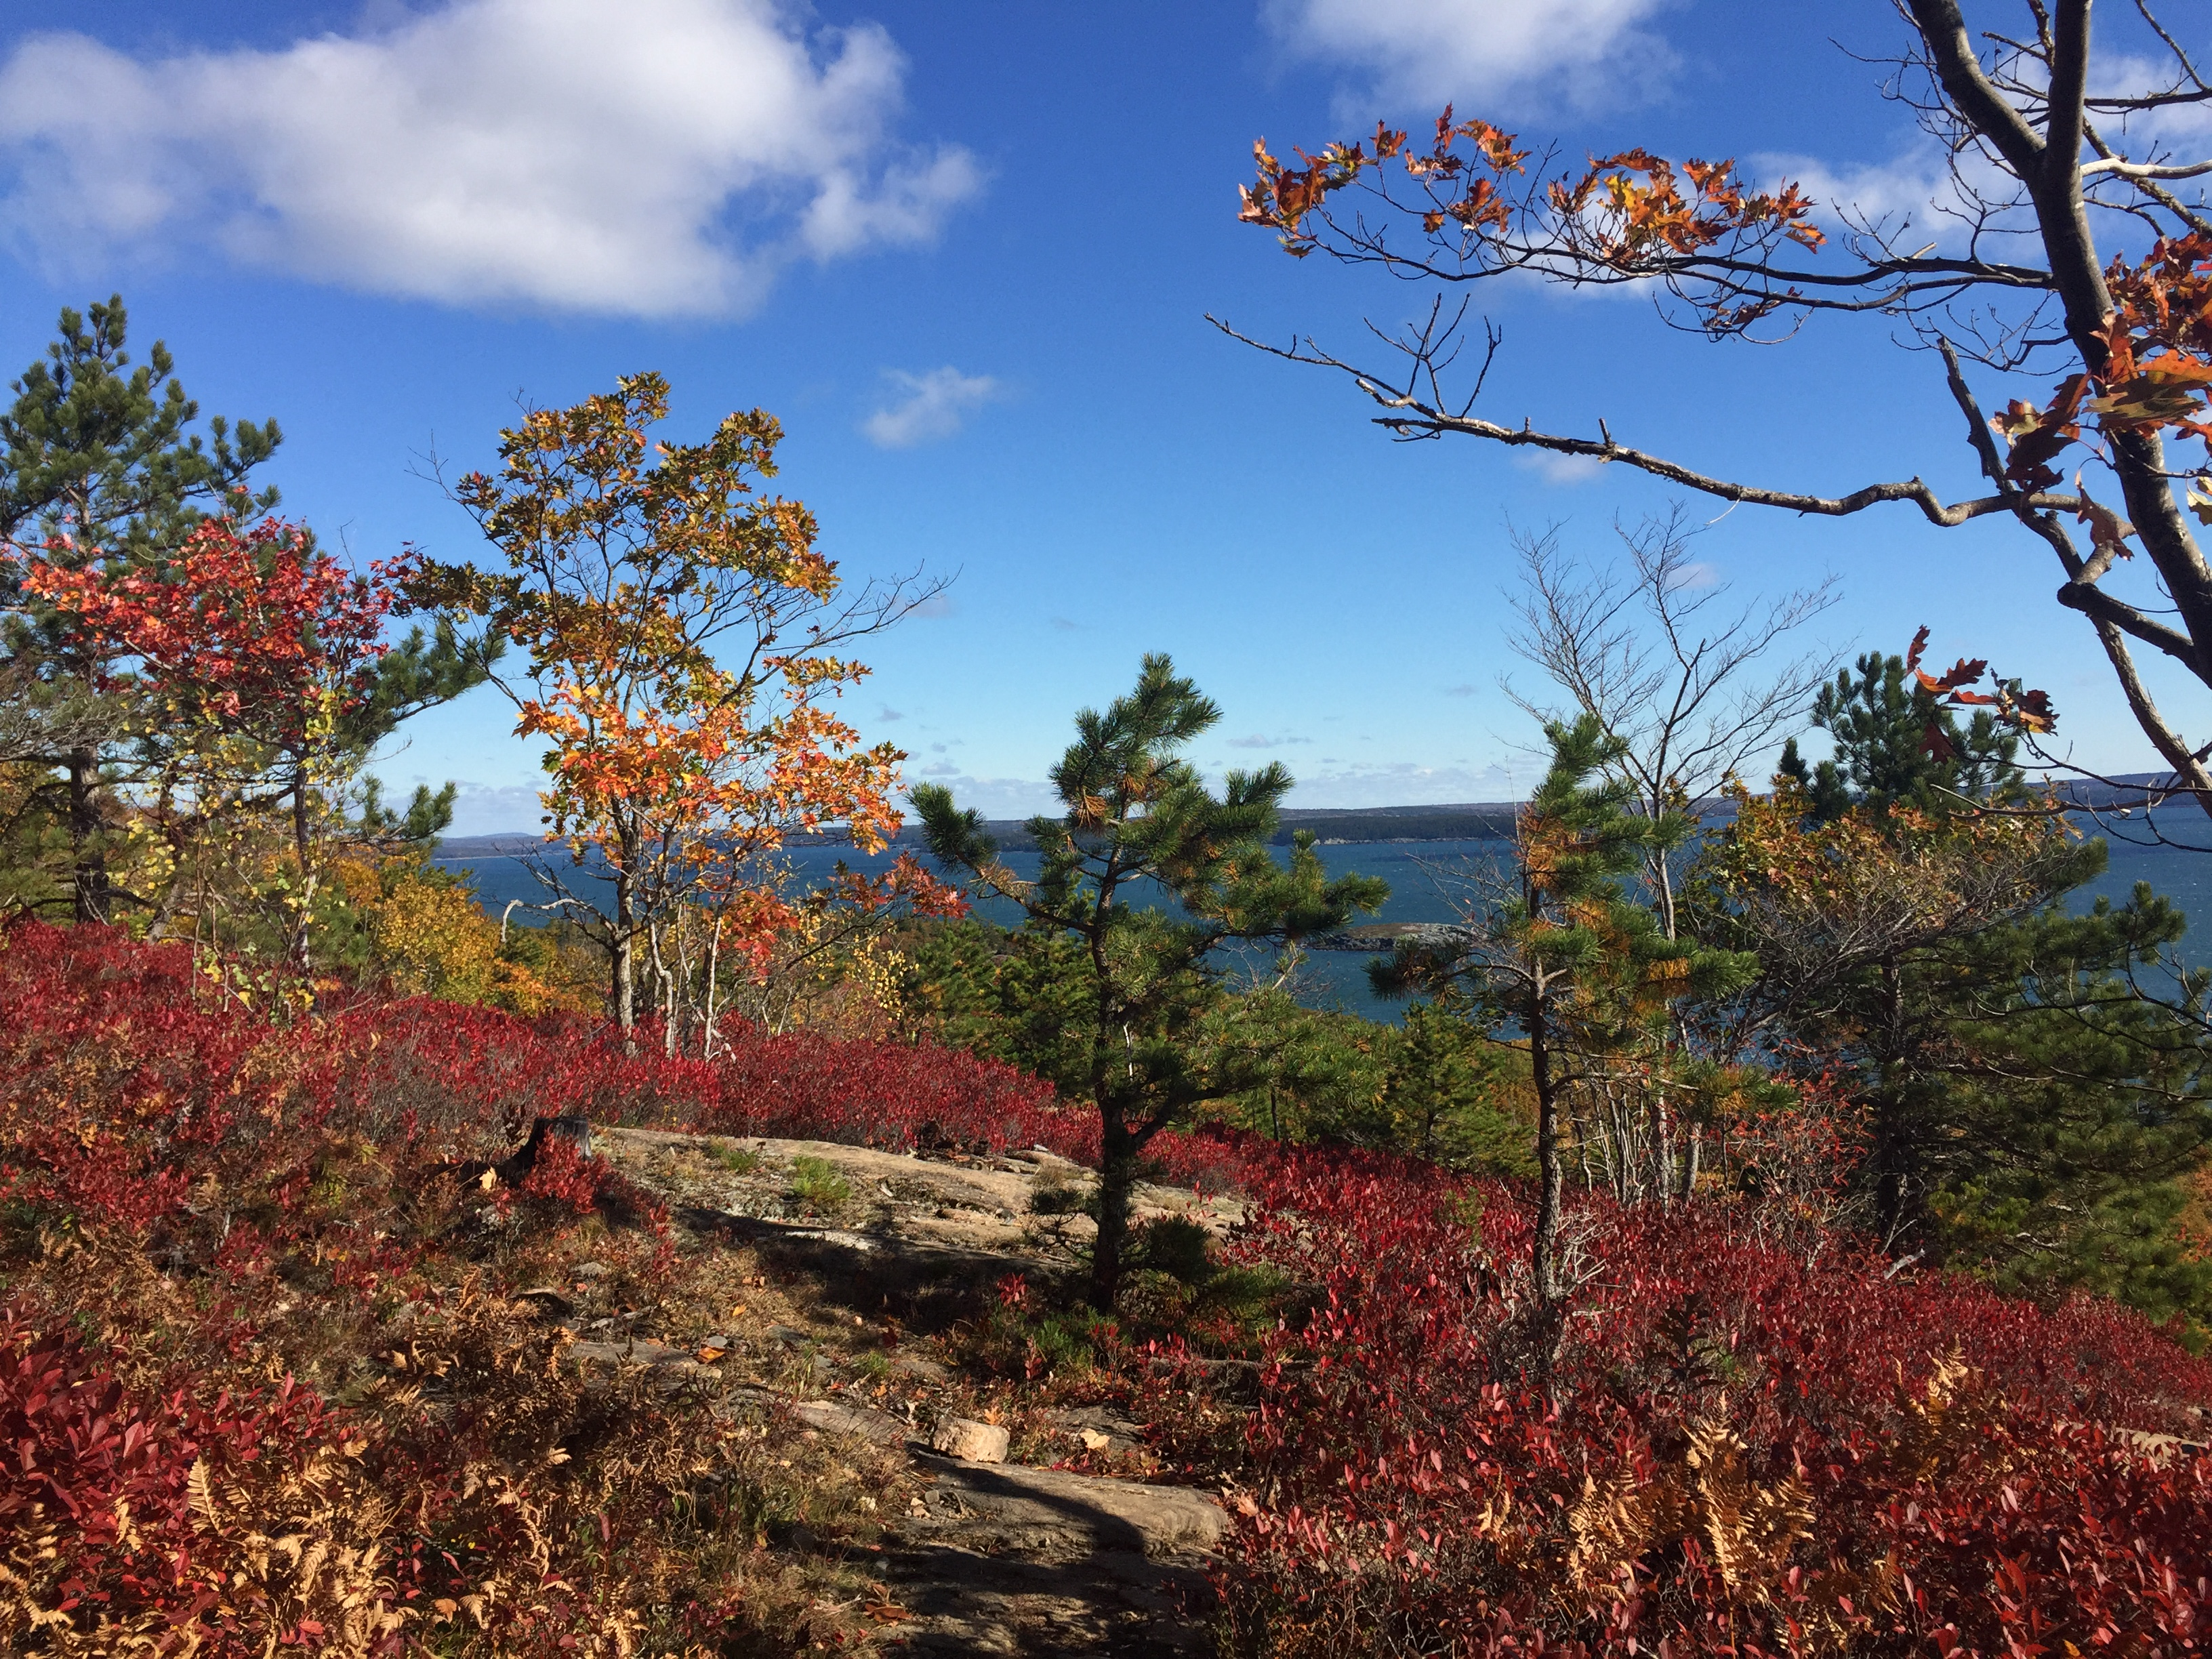 5. Park Loop Road, Acadia National Park